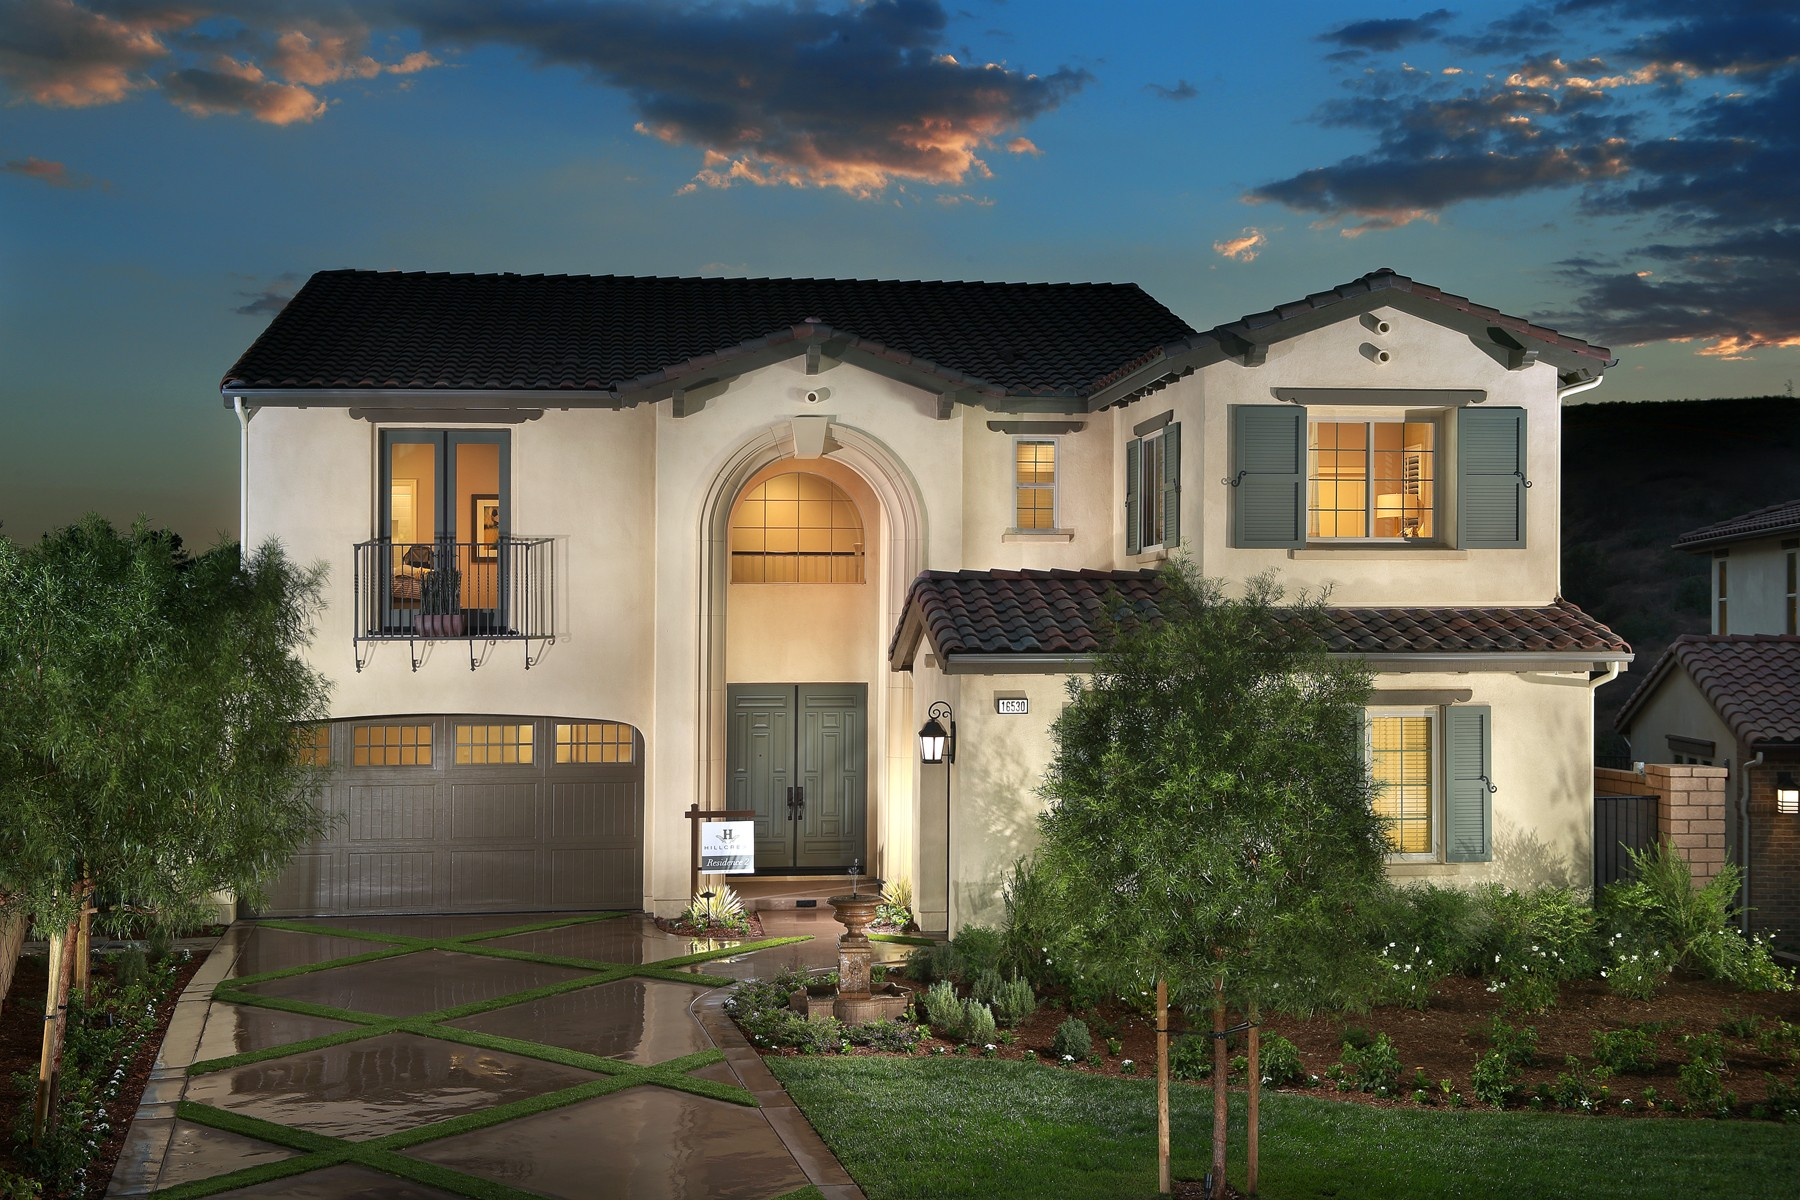 New Homes For Sale In Chino Ca